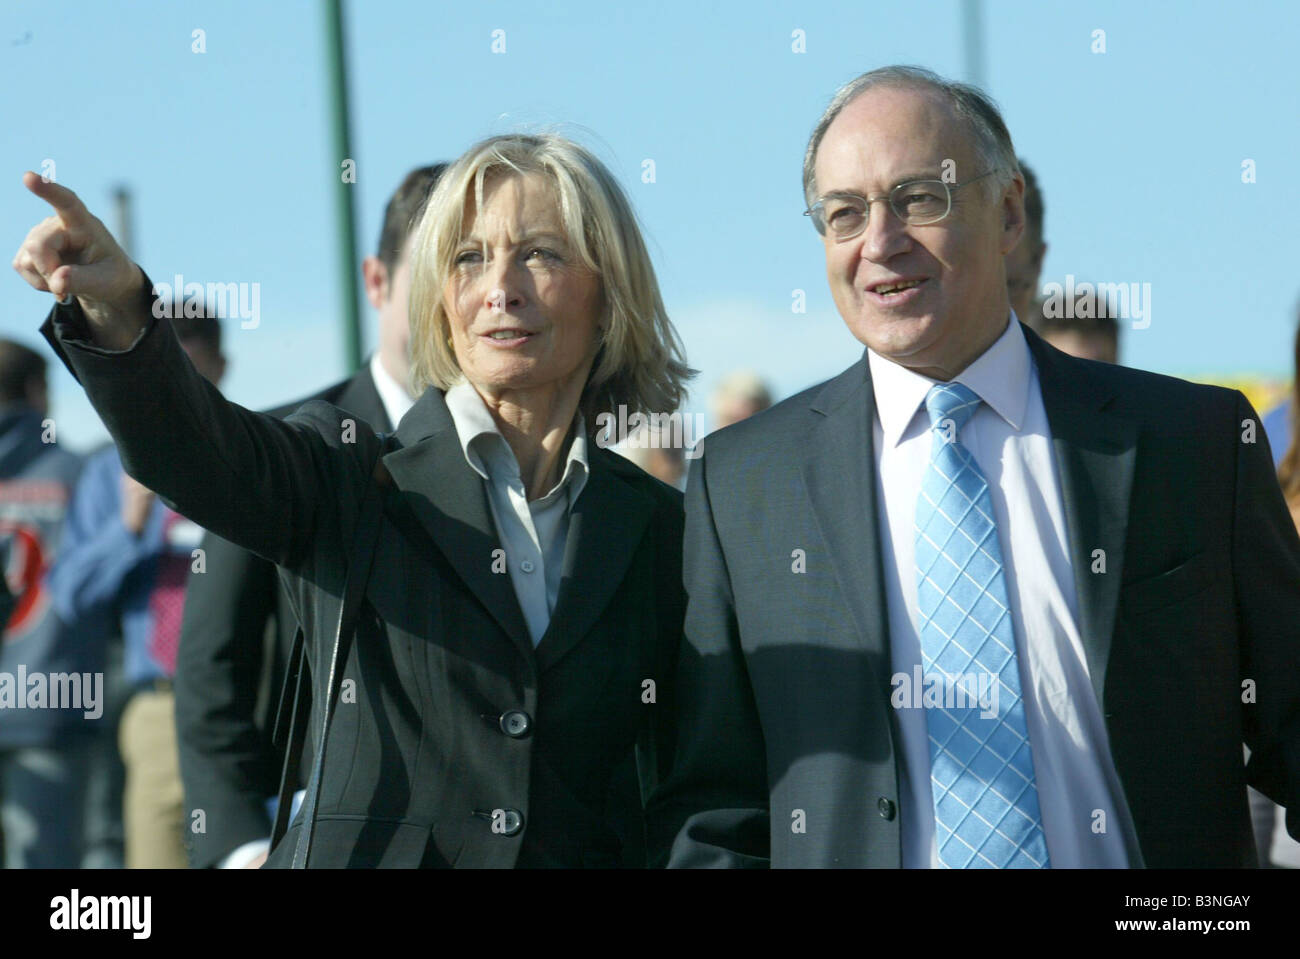 Conservative leader Michael Howard and his wife Sandra at Tory Party Conference in Bournemouth 2004 - Stock Image